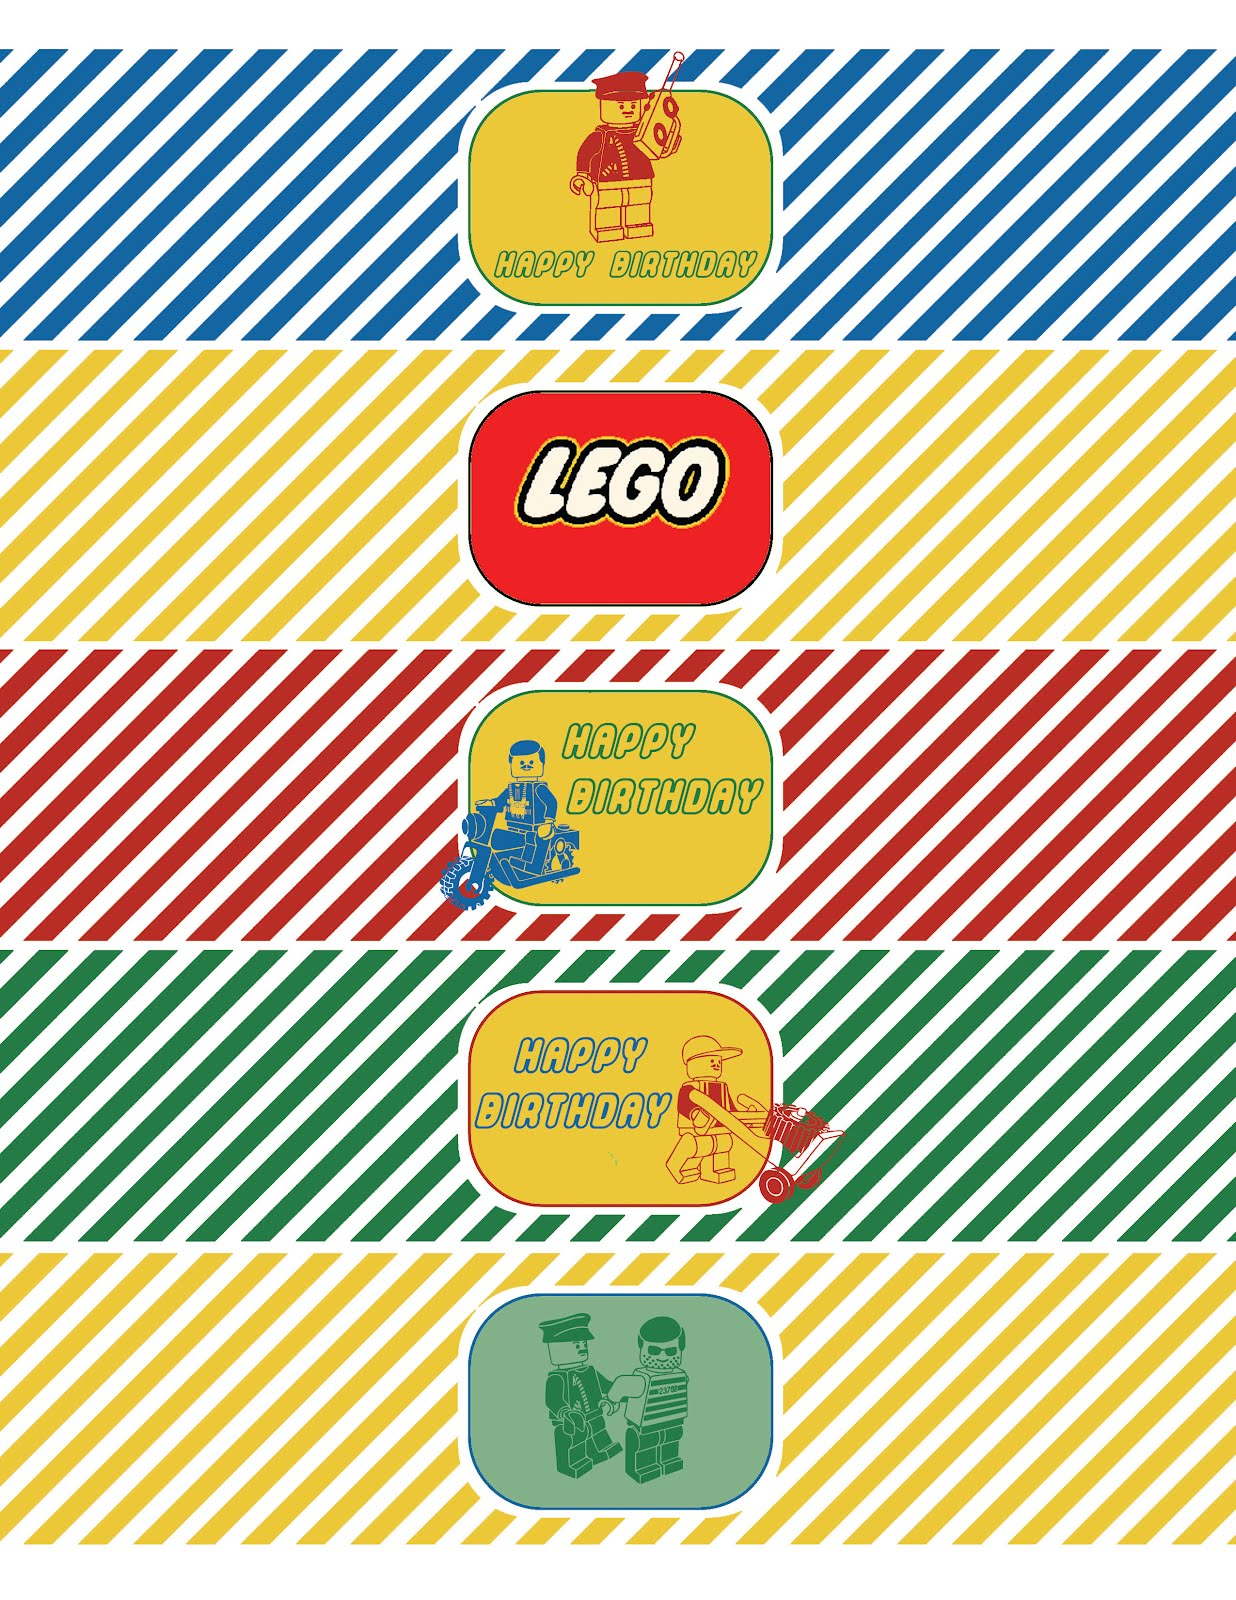 Gargantuan image pertaining to lego party printable